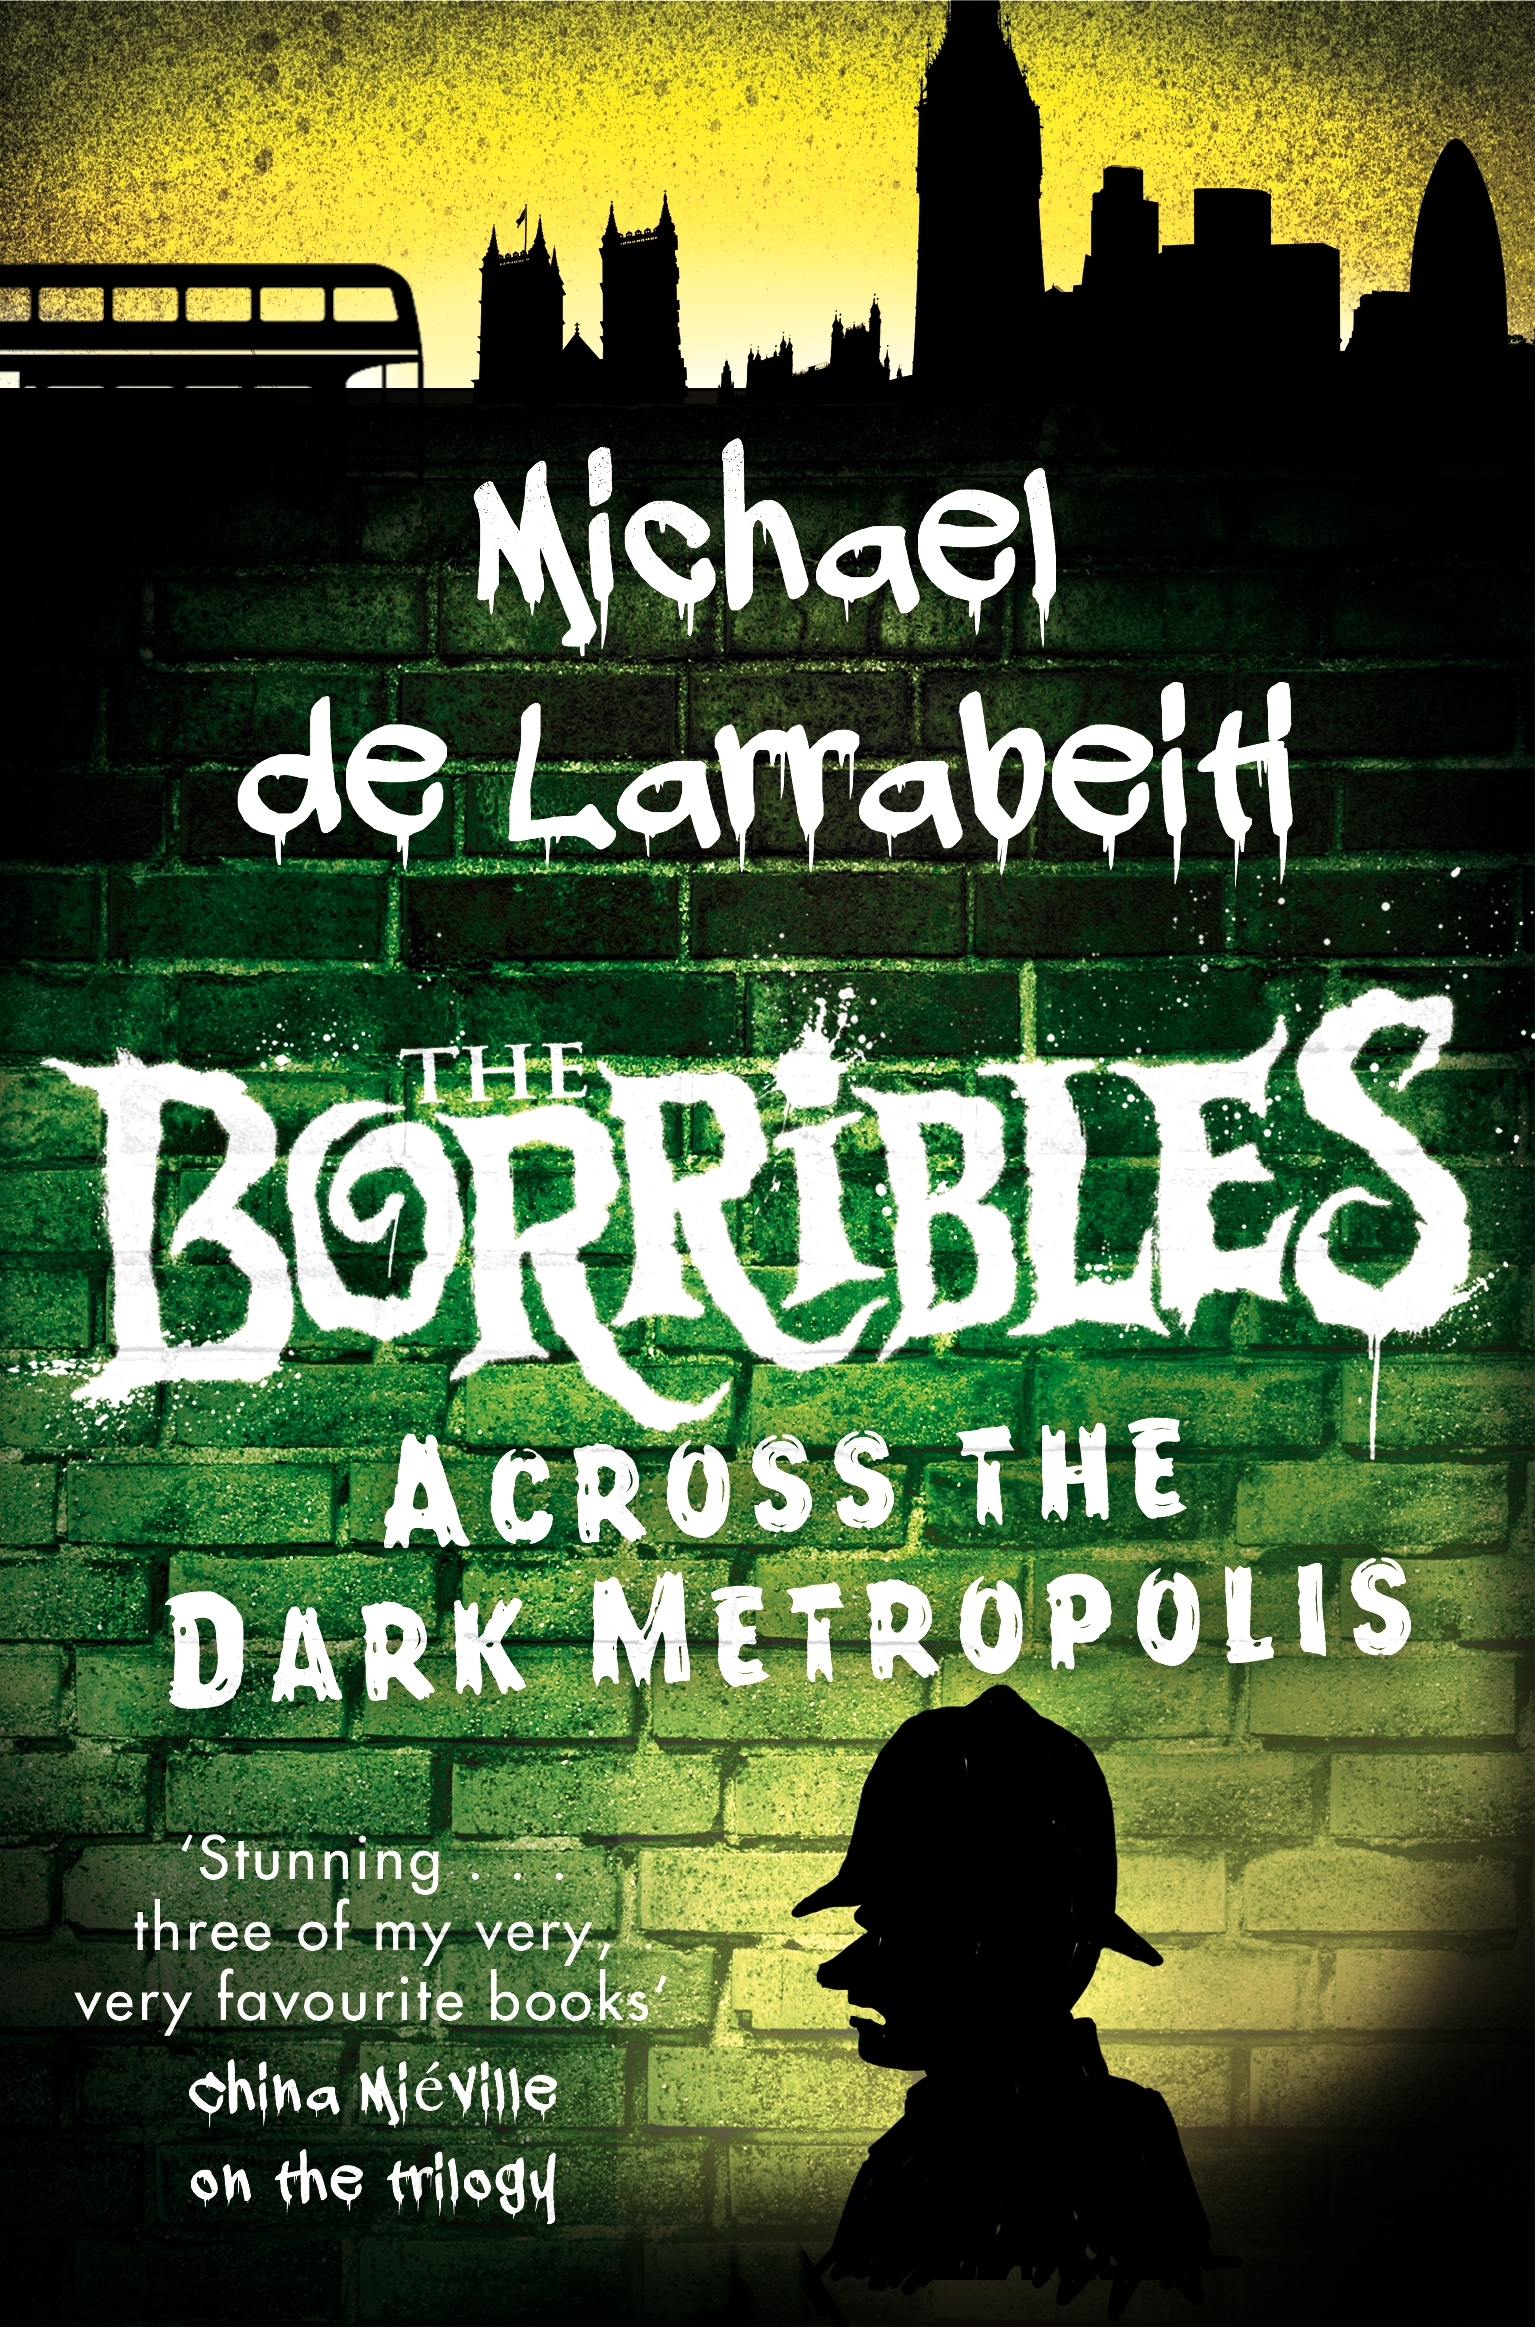 The Borribles - Across the Dark Metropolis